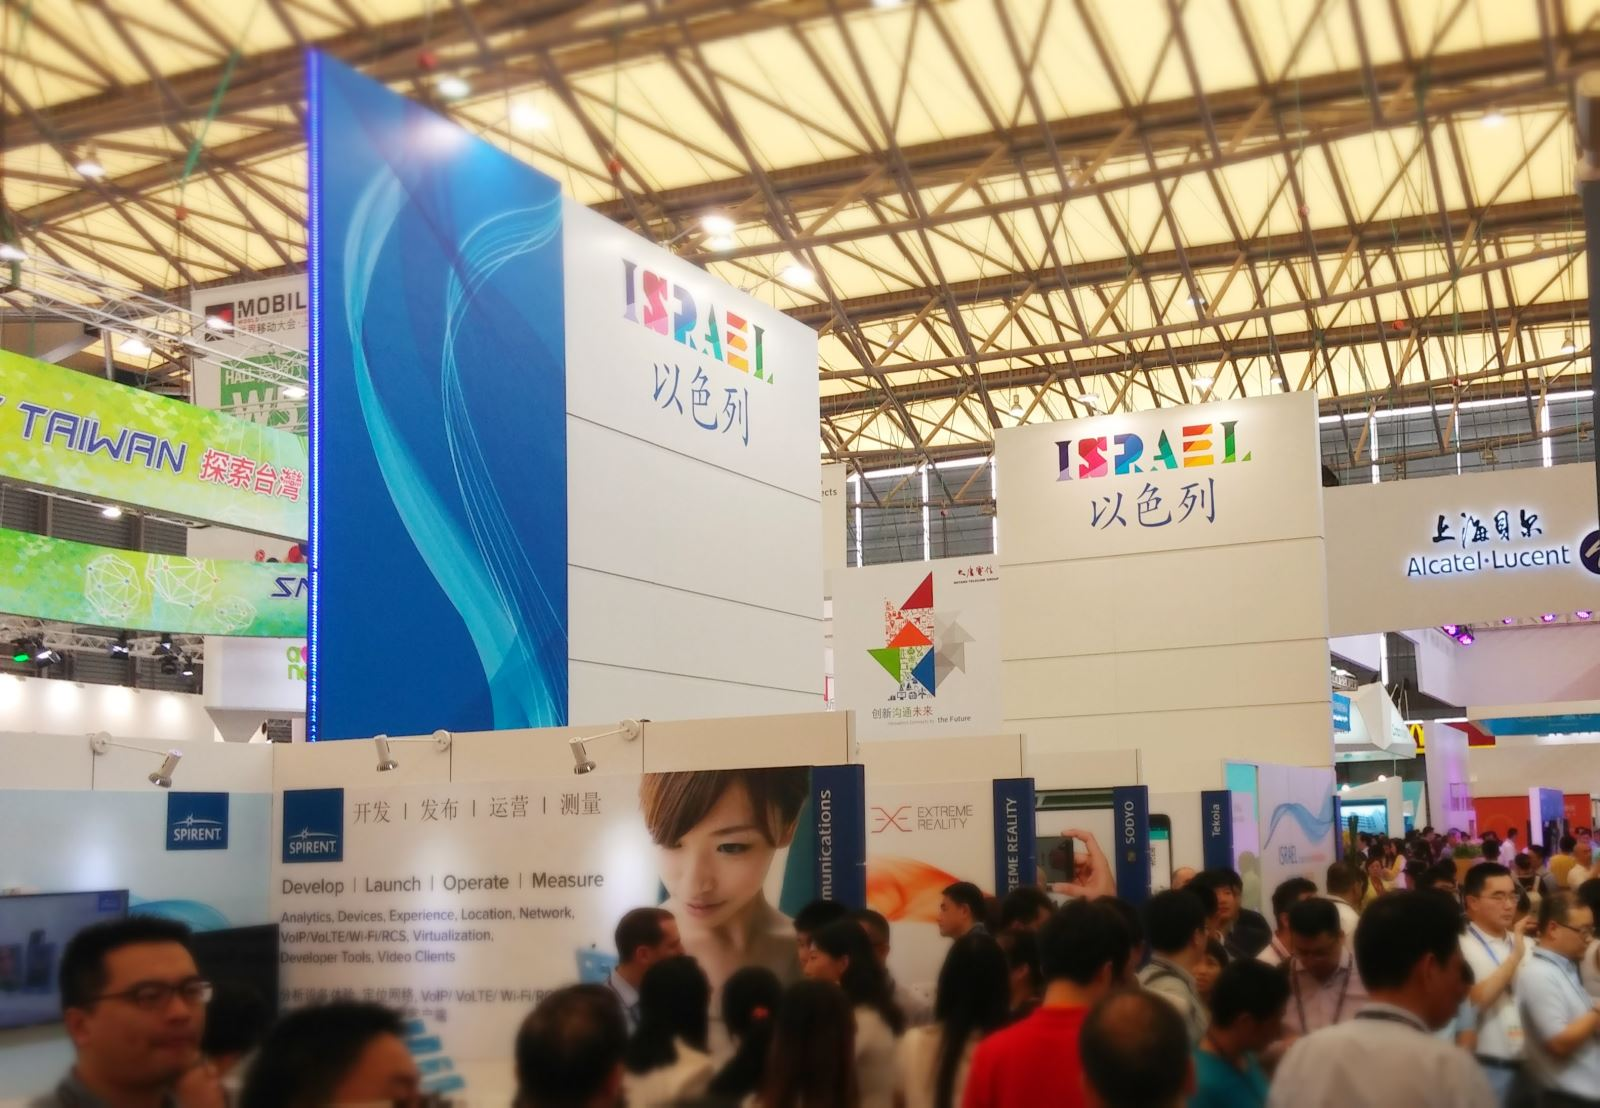 MWC Mobile World Congress – Shanghai 2015